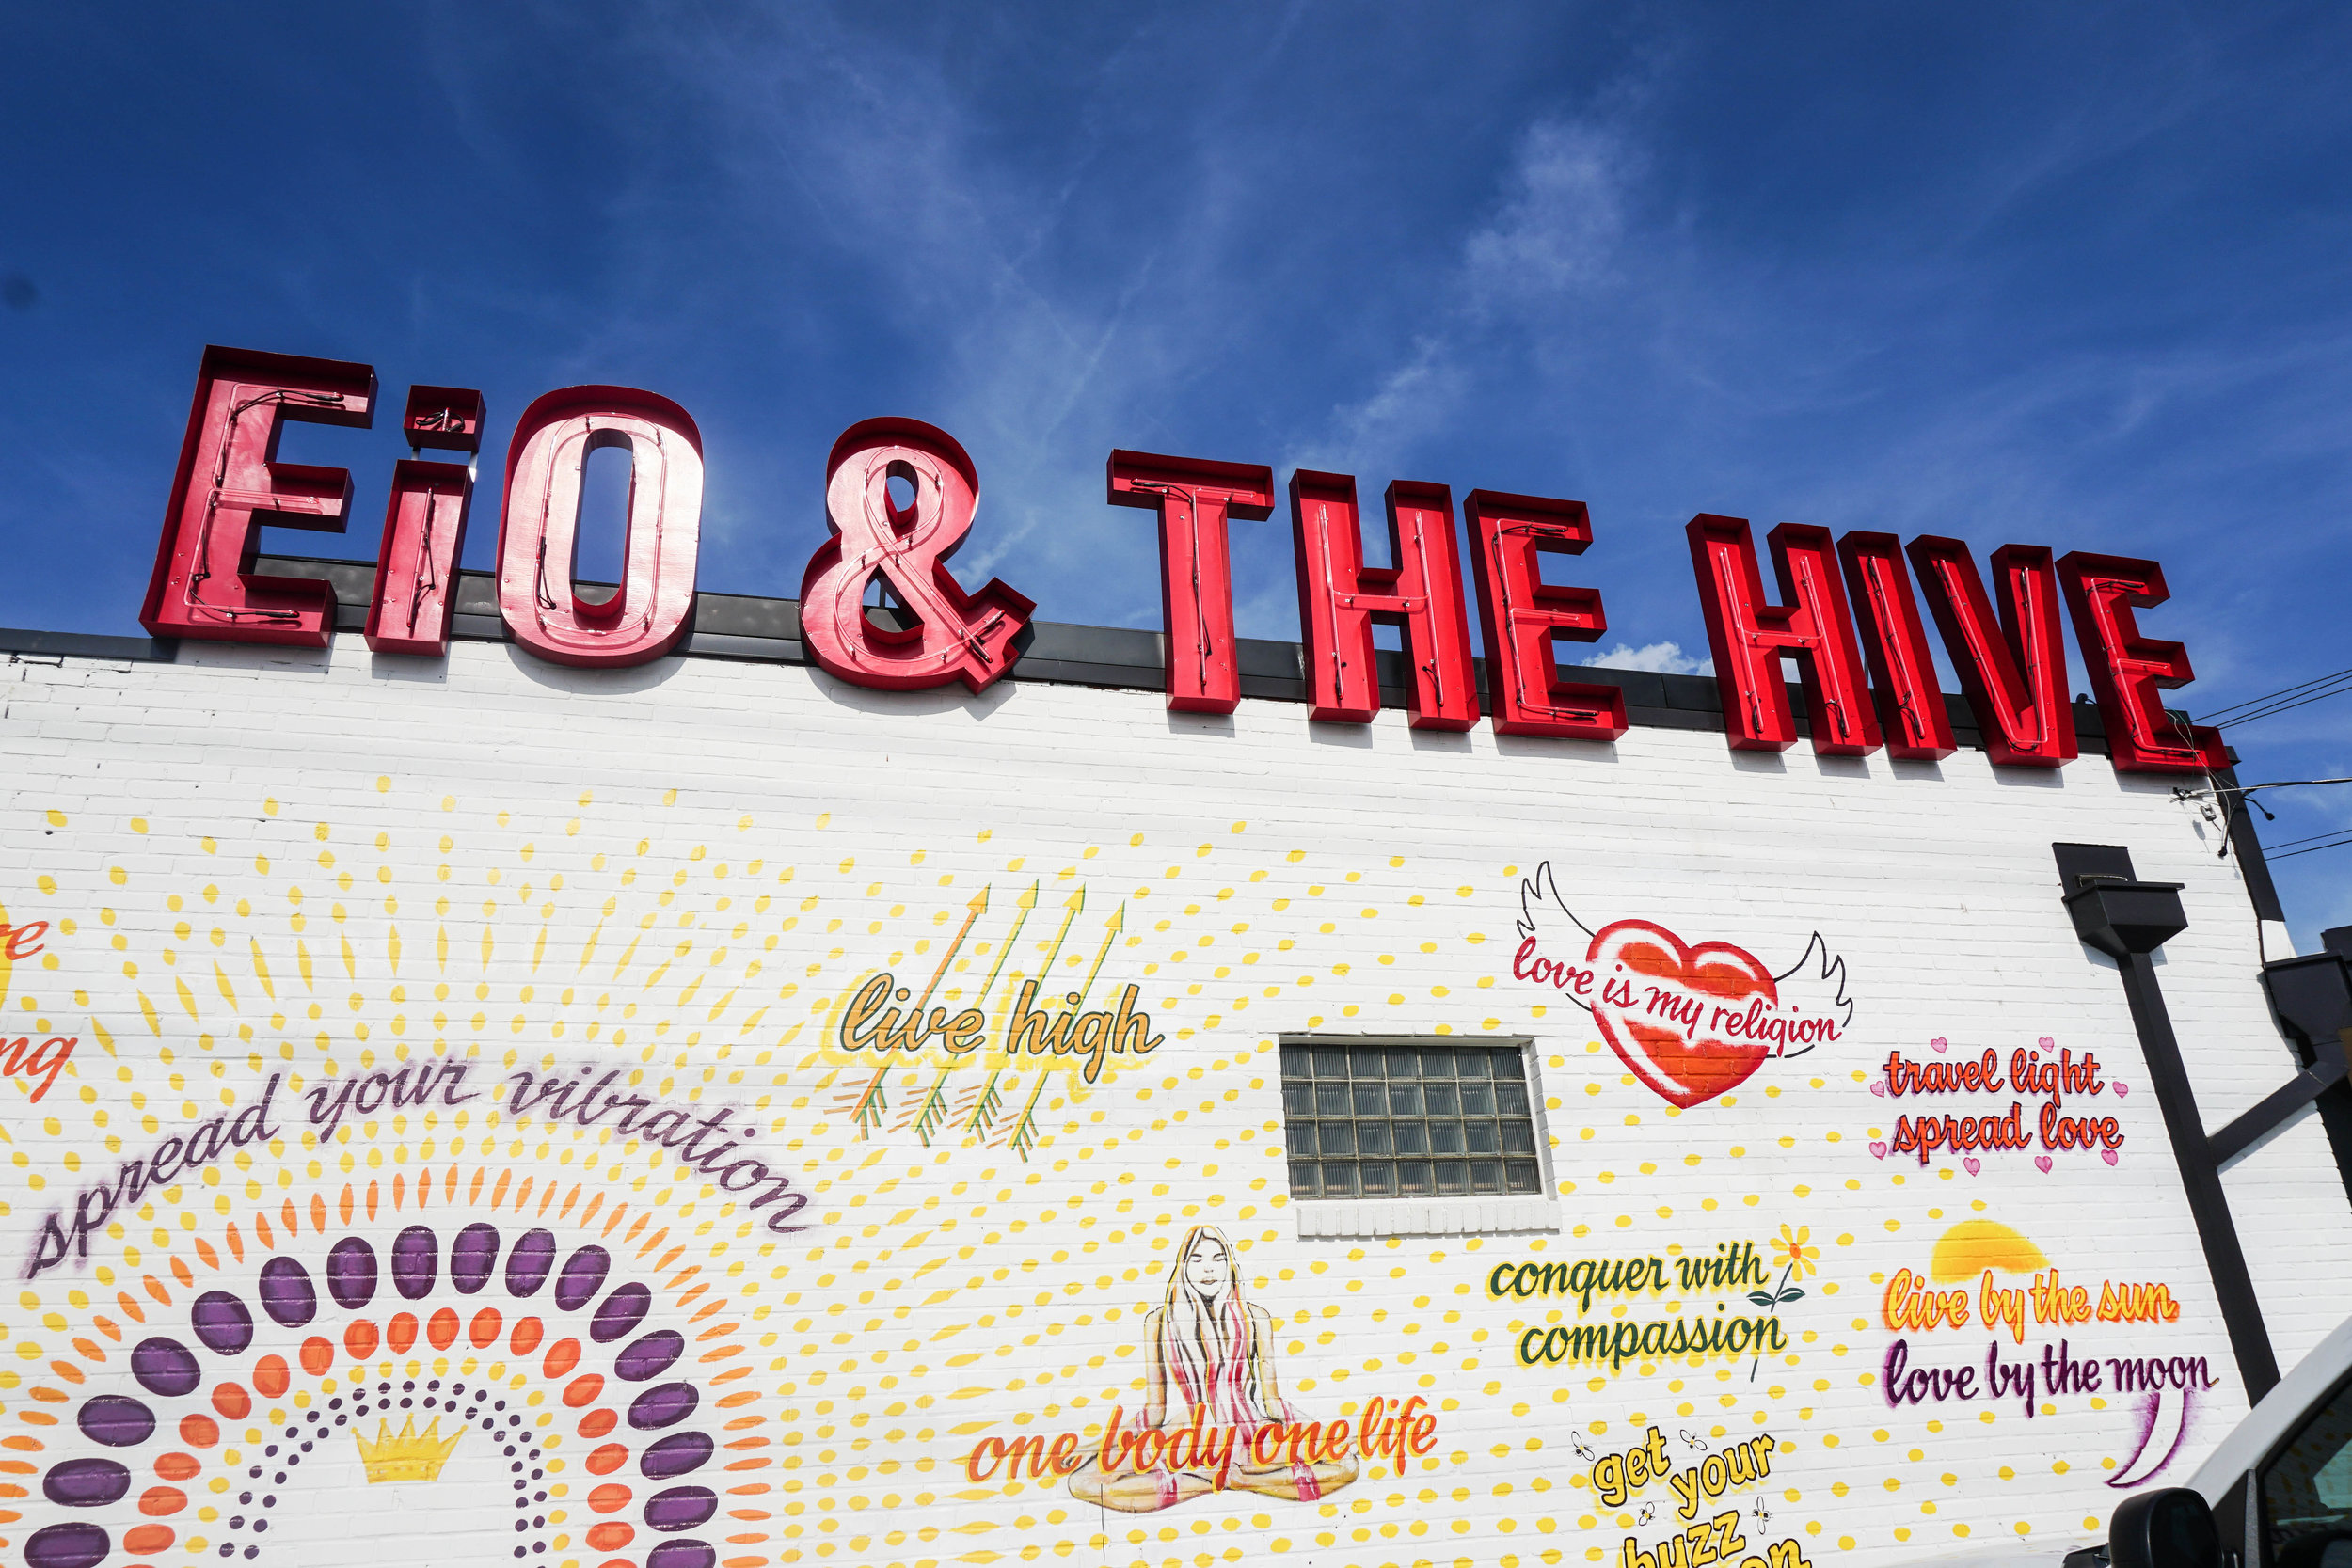 eio-and-the-hive-nashville-mural.jpg